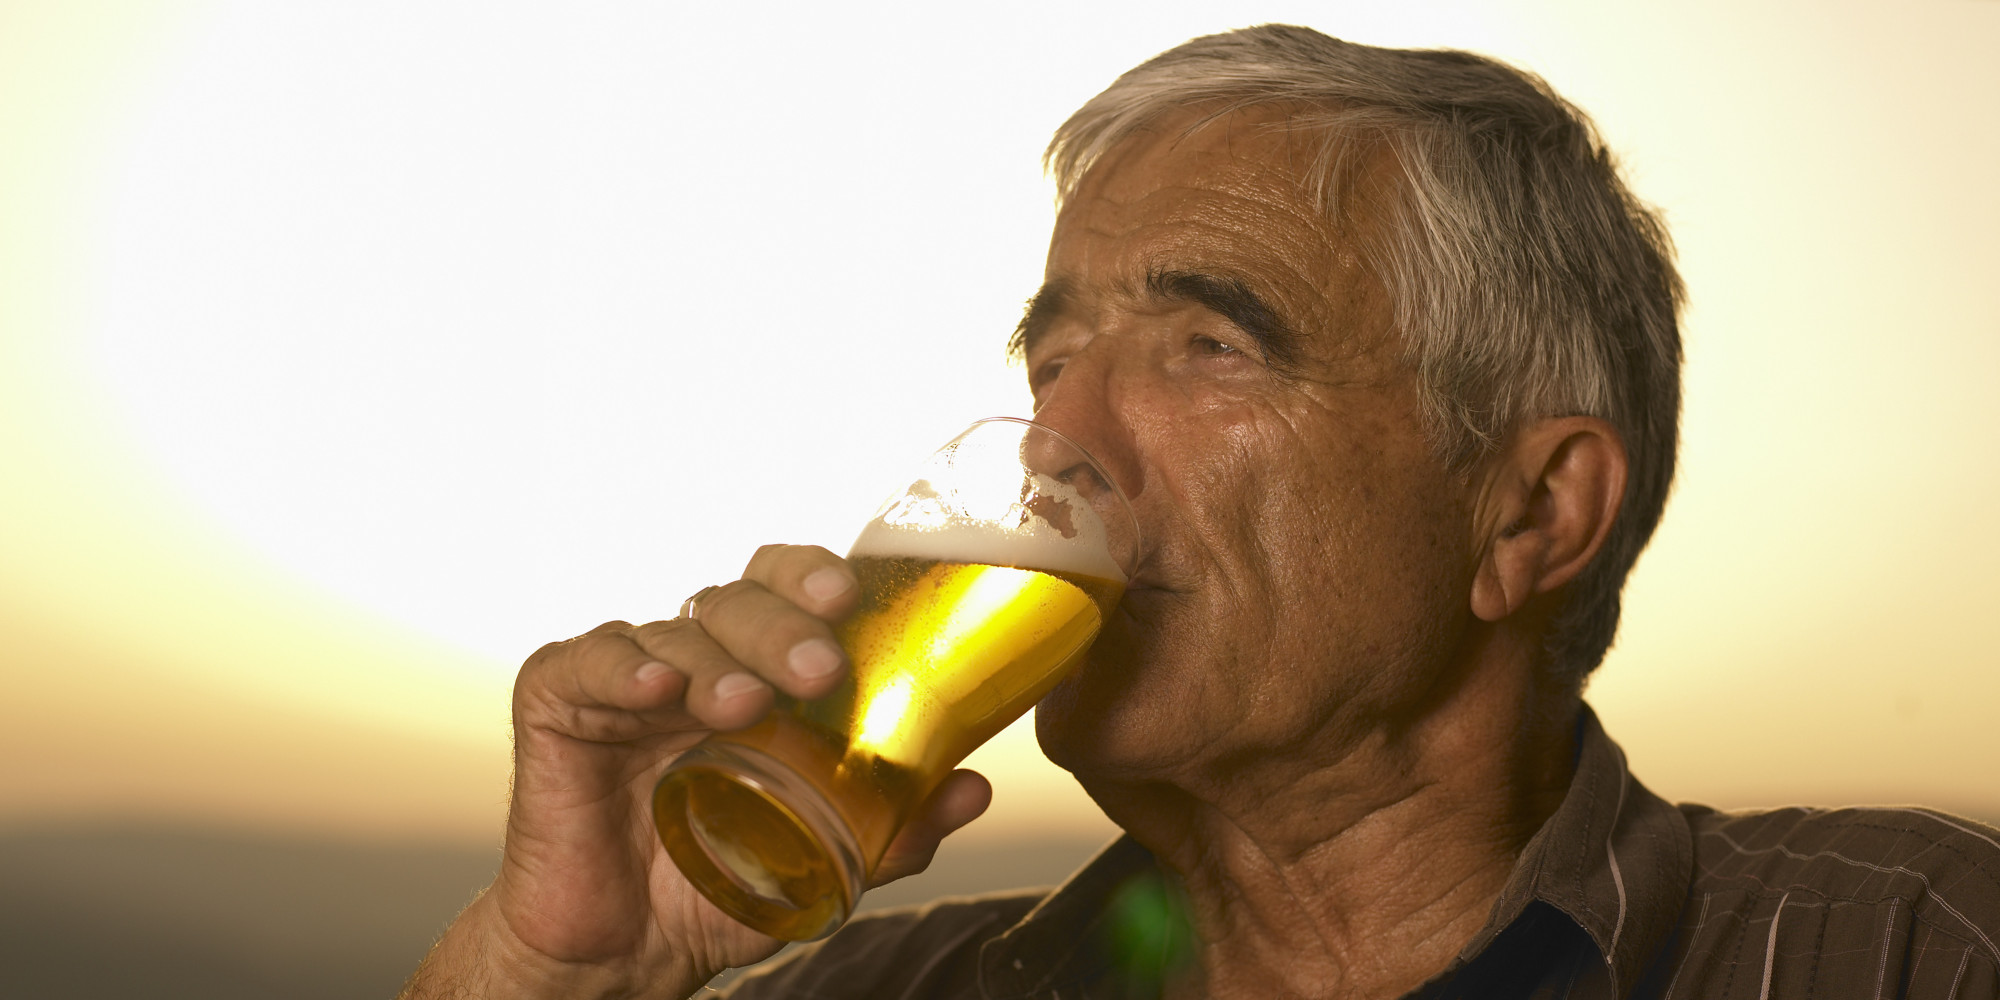 Heavy Drinking Linked To Memory Loss In Older Men, Study ...